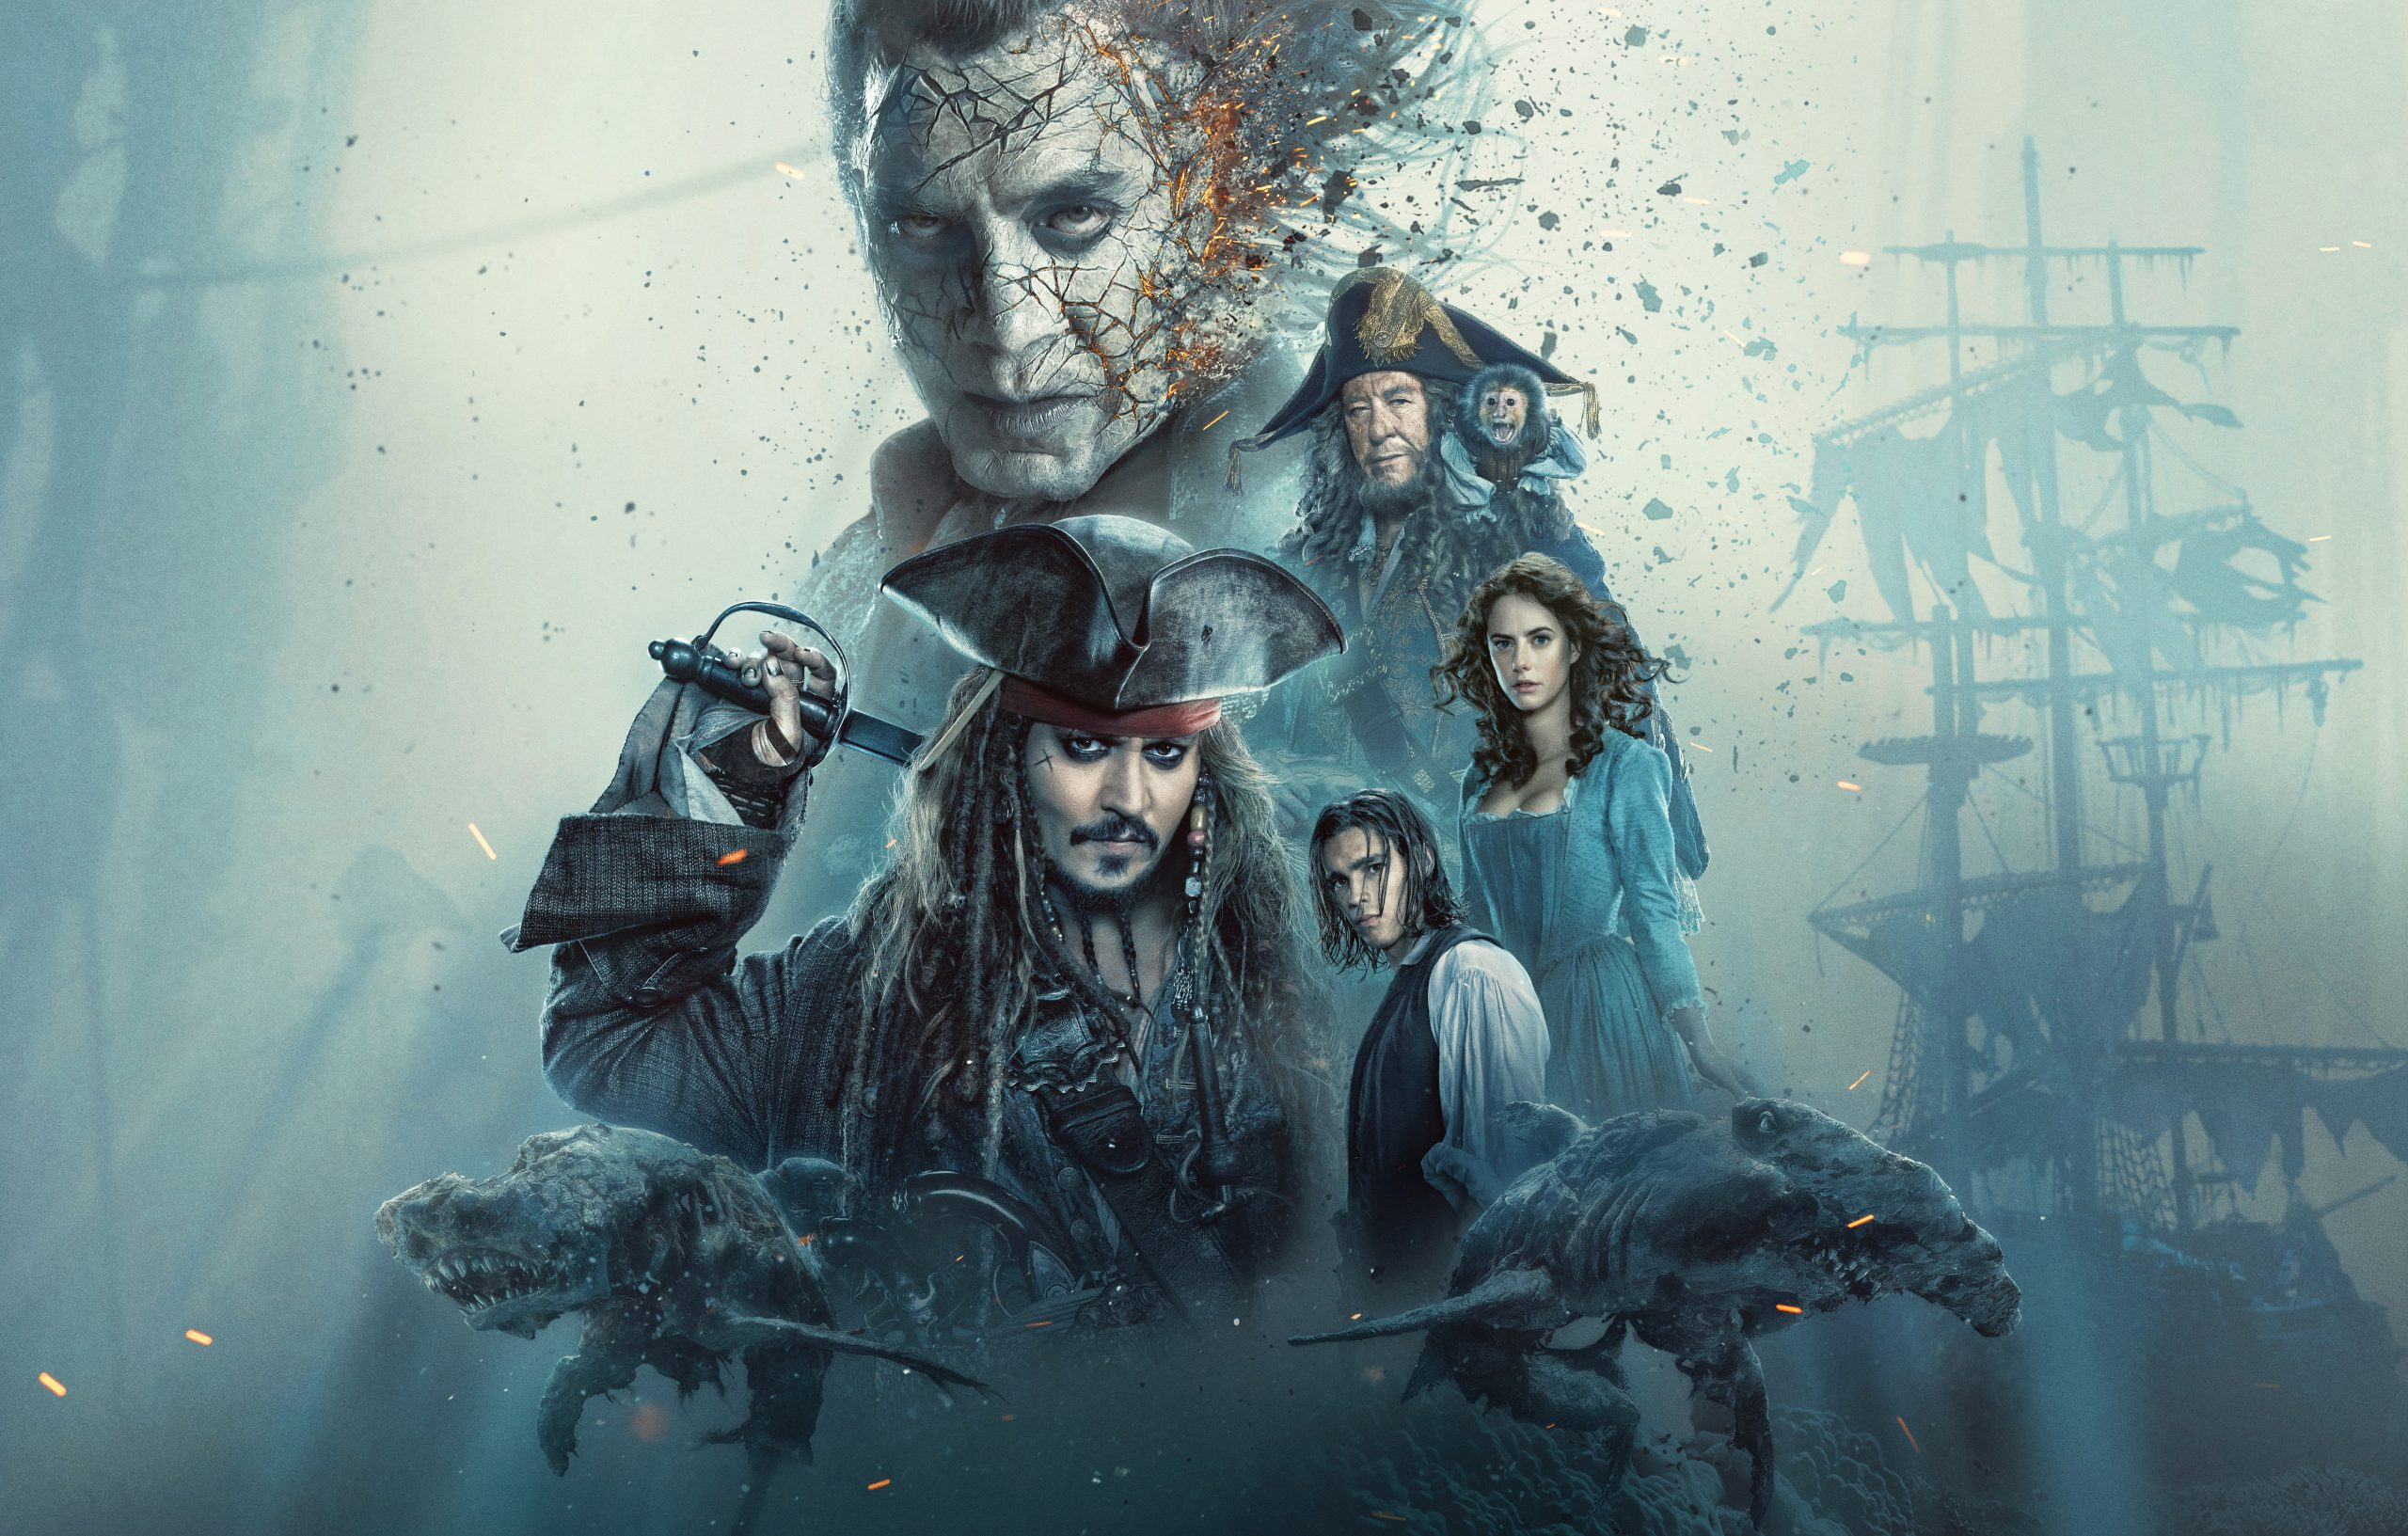 Critique « Pirates de Caraïbes : La Vengeance de Salazar » (2017) : Pirates tell no good tales anymore!